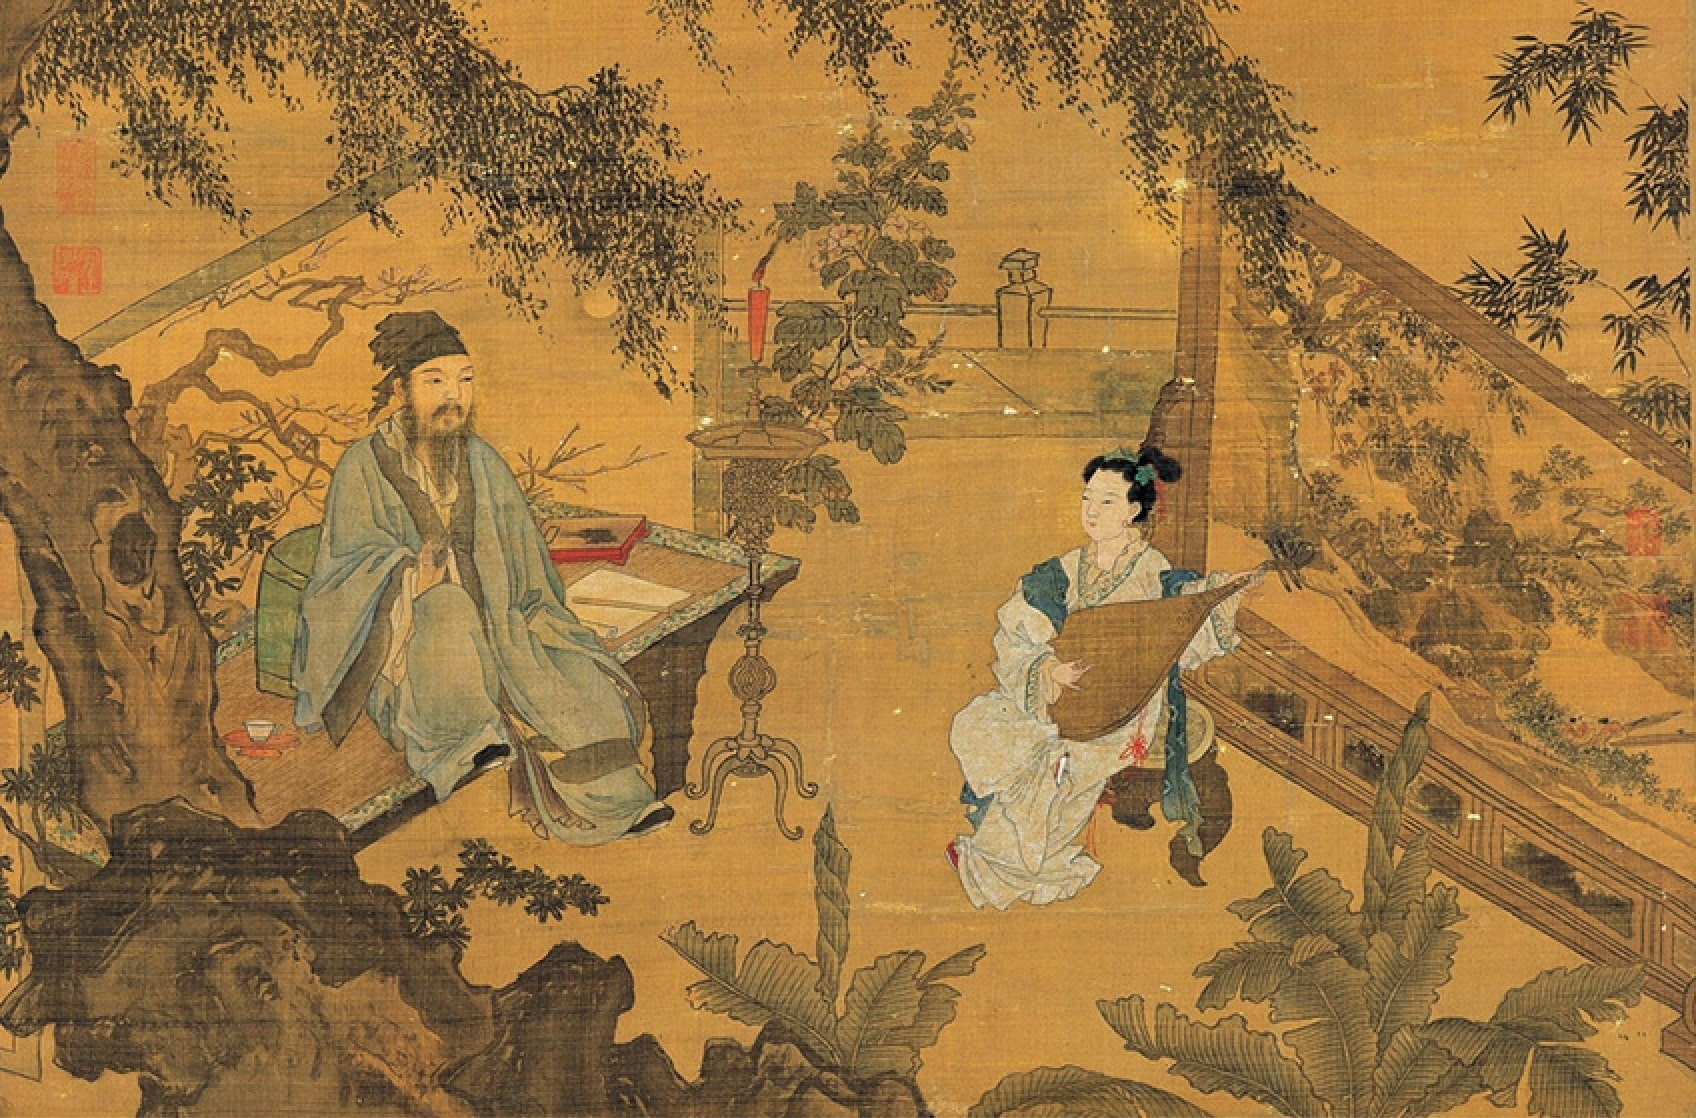 Two Ancient Chinese Paintings on Humility and Integrity